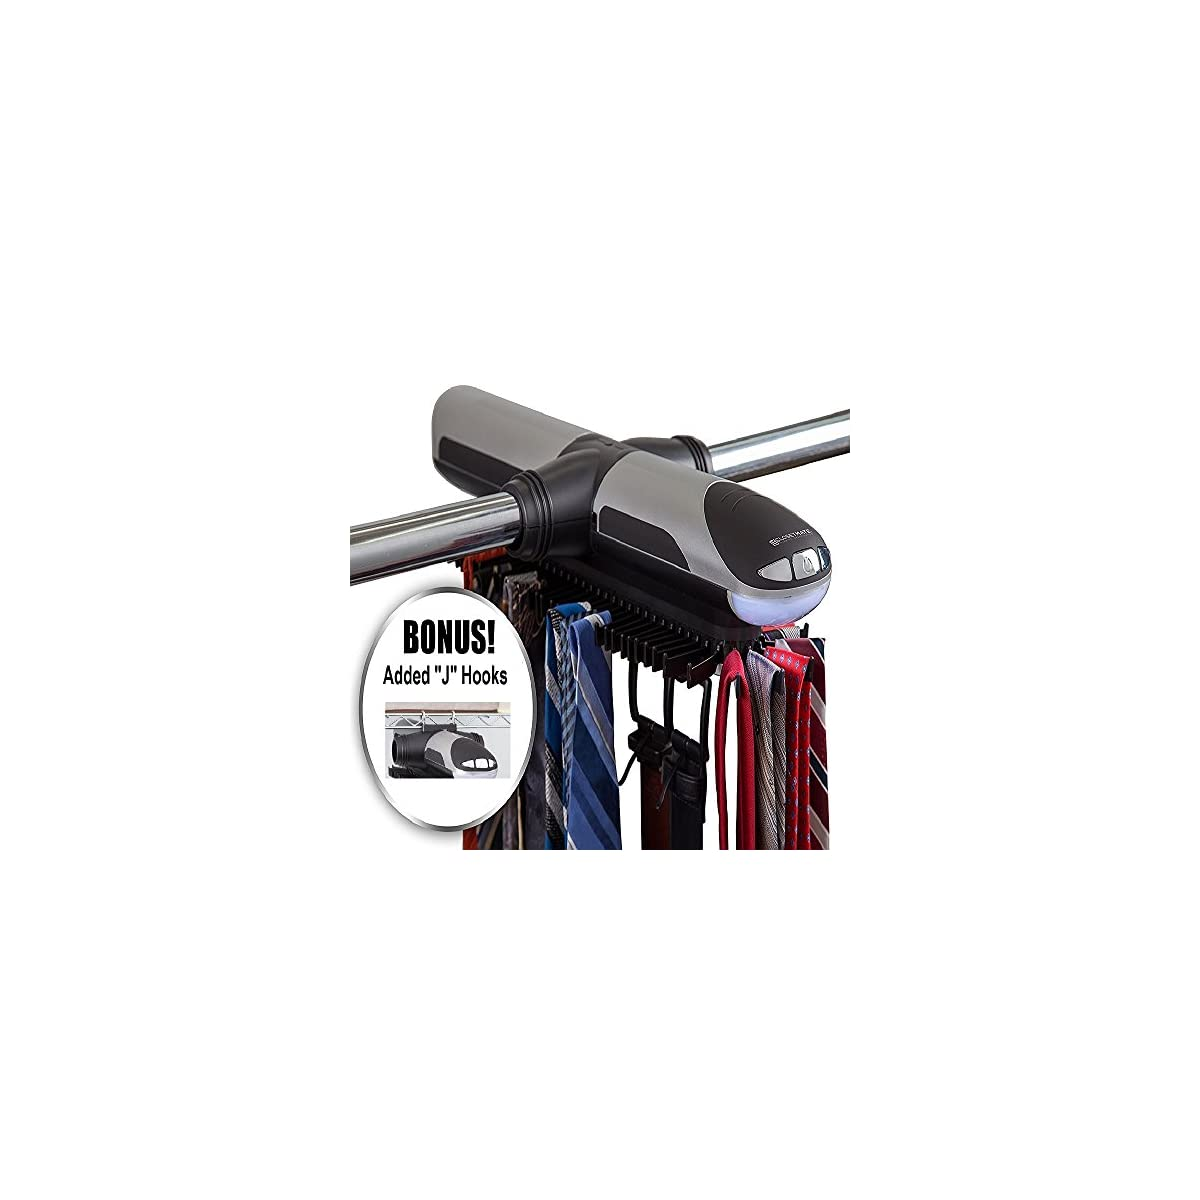 Bottom Hooks for Belts /& Other Accessories Holds 72 Ties and 8 Belts Automatic Tie Rack Rotates Forwards /& Backwards Tech Tools Motorized Revolving Tie and Belt Rack with Built in LED Light